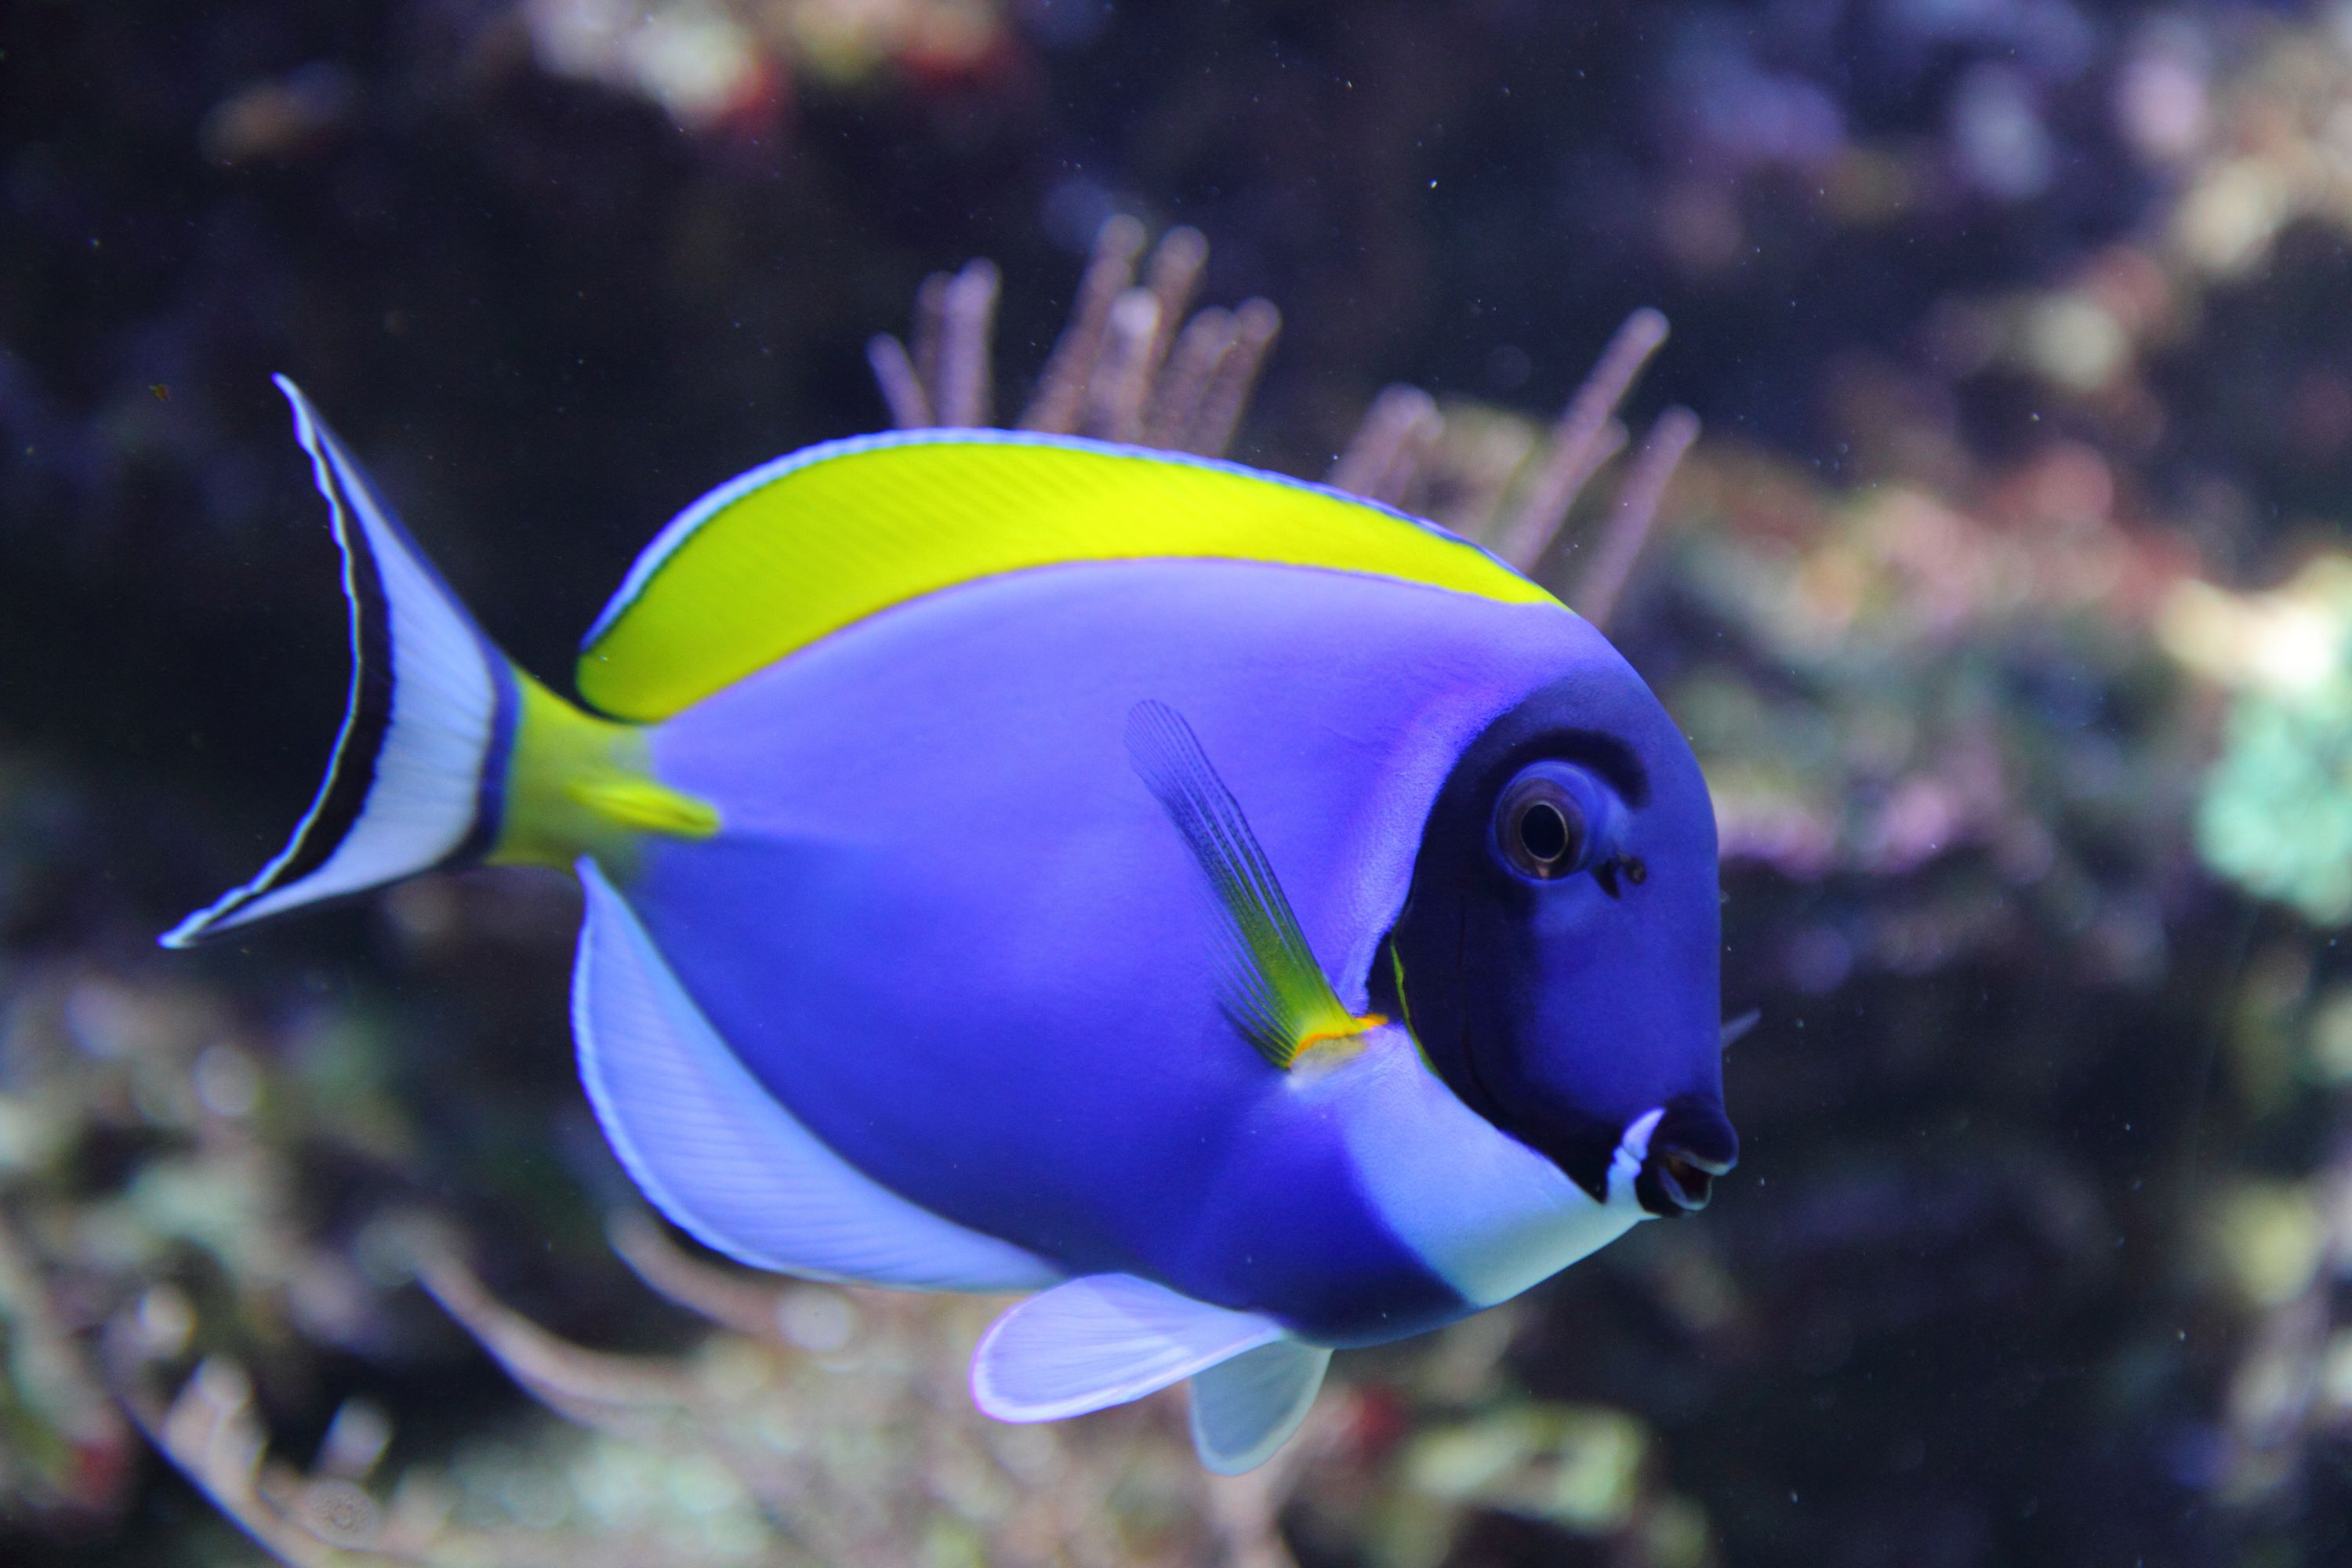 Generally caring for saltwater fish is more challenging for Exotic fish tanks